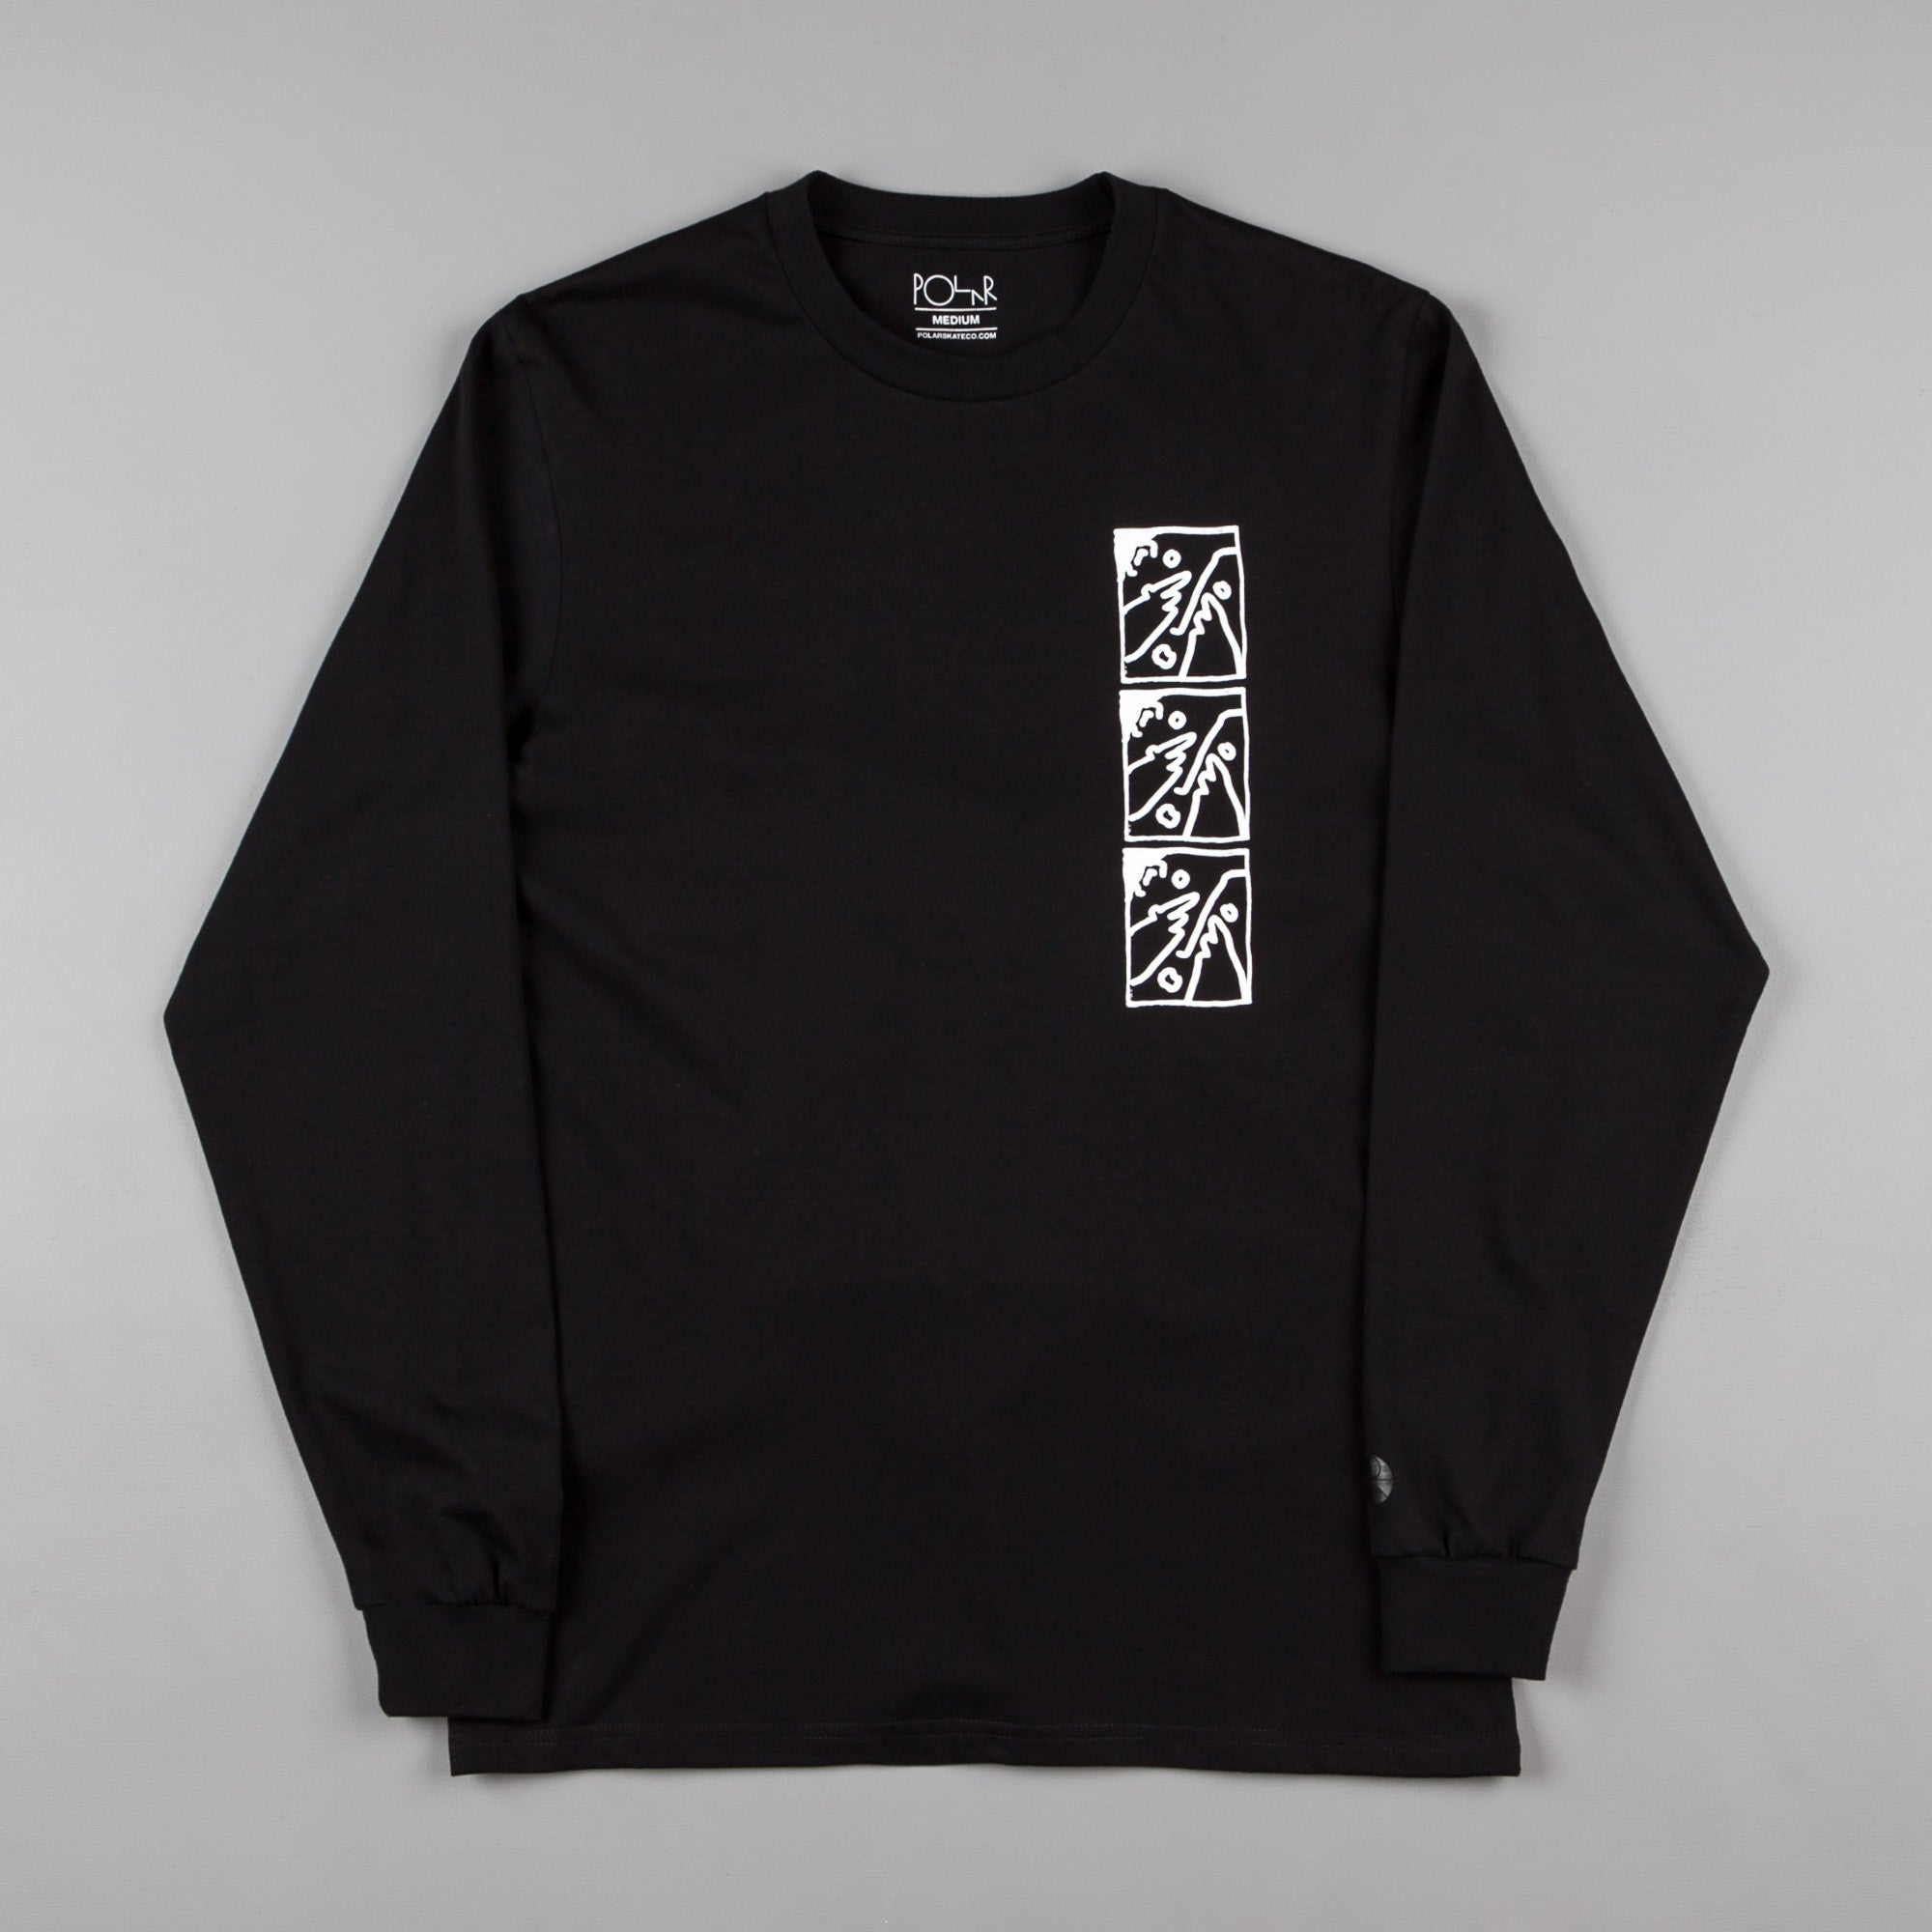 Polar Three Faces Long Sleeve T-Shirt - Black / White